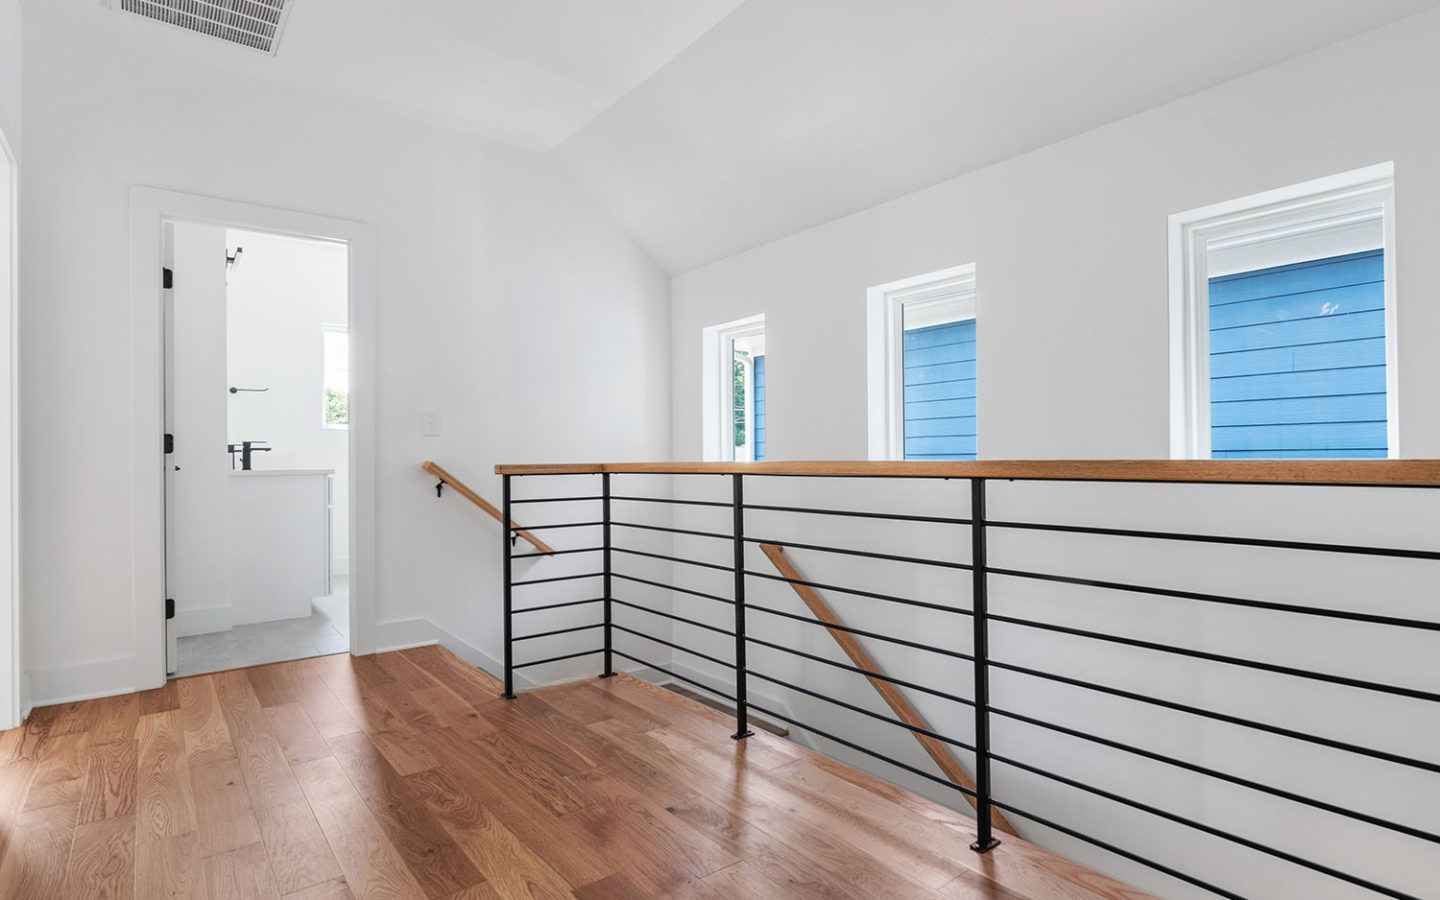 inside a freshly renovated home, showing stair railings and door open to bathroom